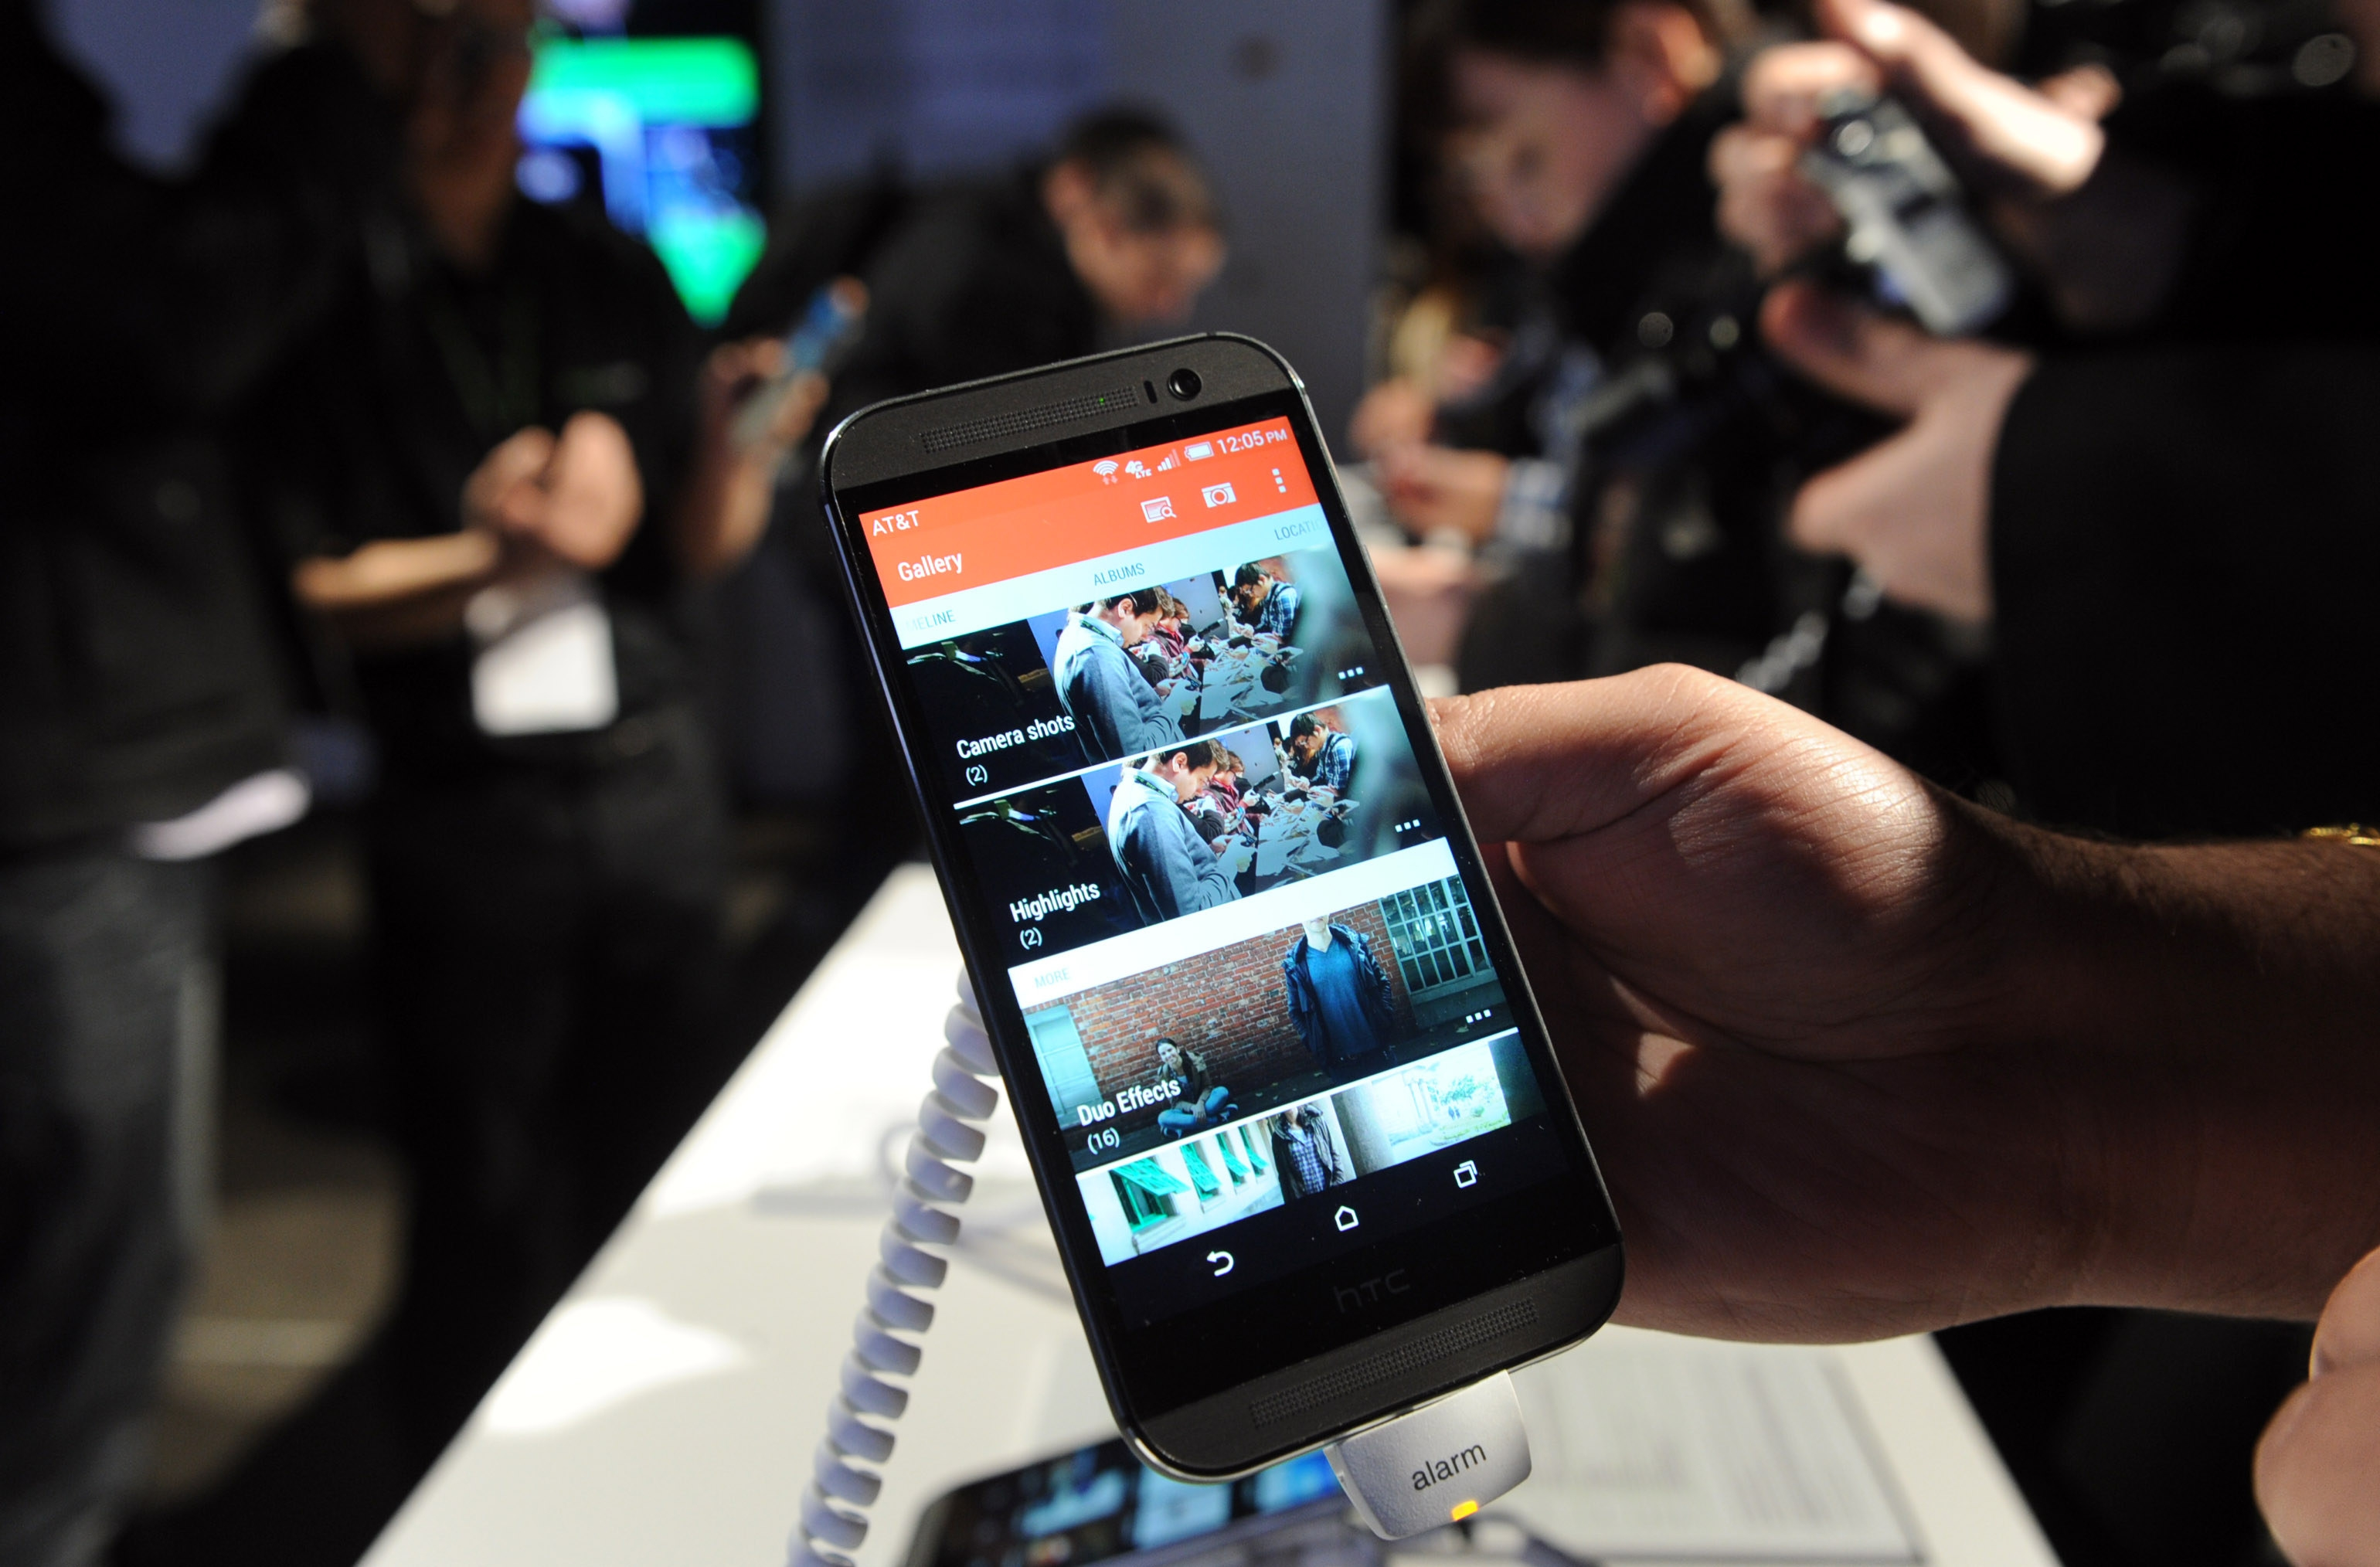 Talk in the tech world points to Apple catching up to other companies when it comes to big-screen smartphones, like the HTC One (M8) shown here.